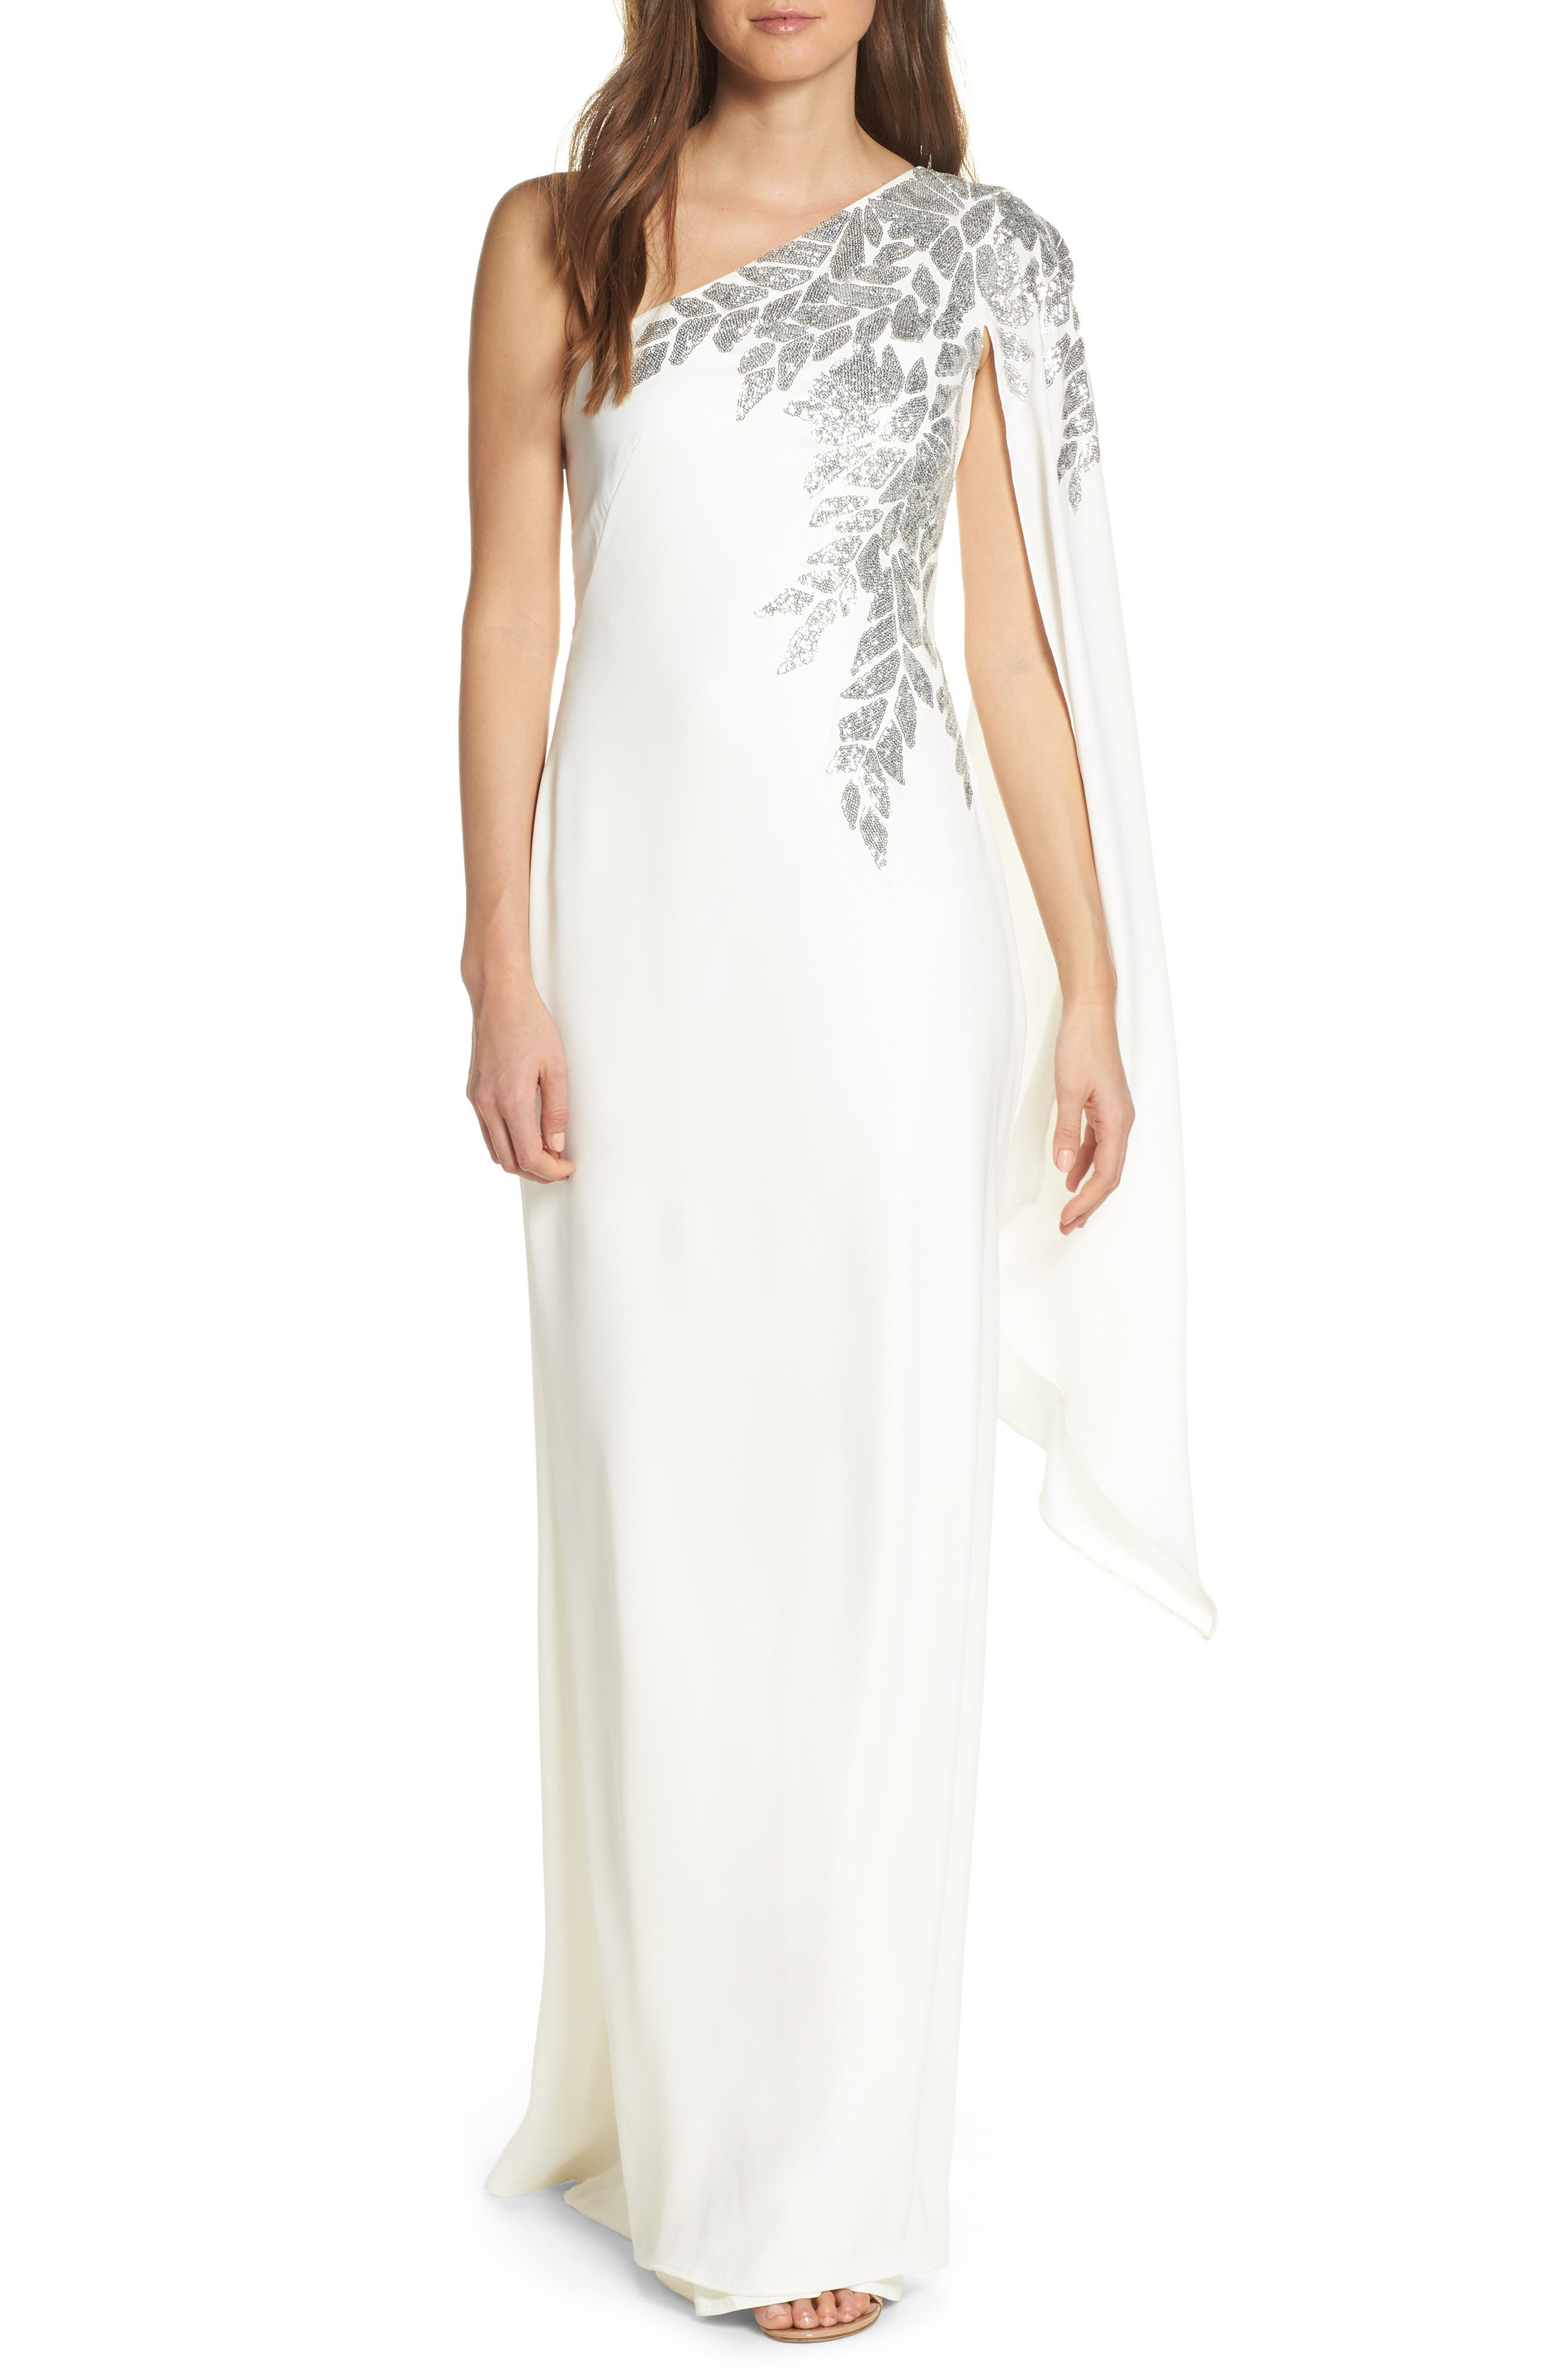 Cape Sleeve Crepe Evening Dress,                             Main thumbnail 1, color,                             IVORY/ SILVER